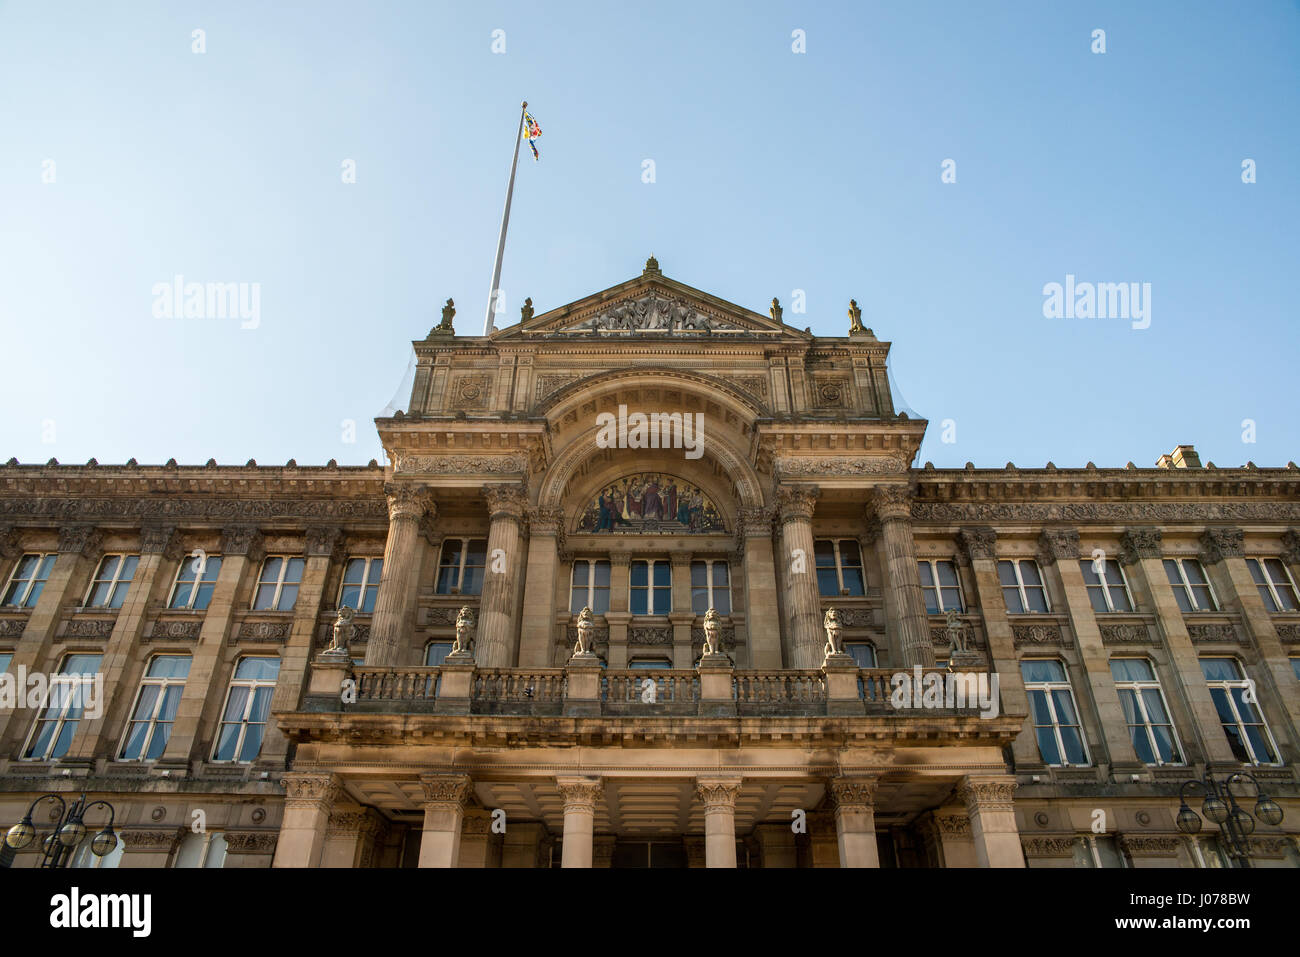 architecture, birmingham, building exterior, cities, city halls, city location, civic, color image, council house, - Stock Image